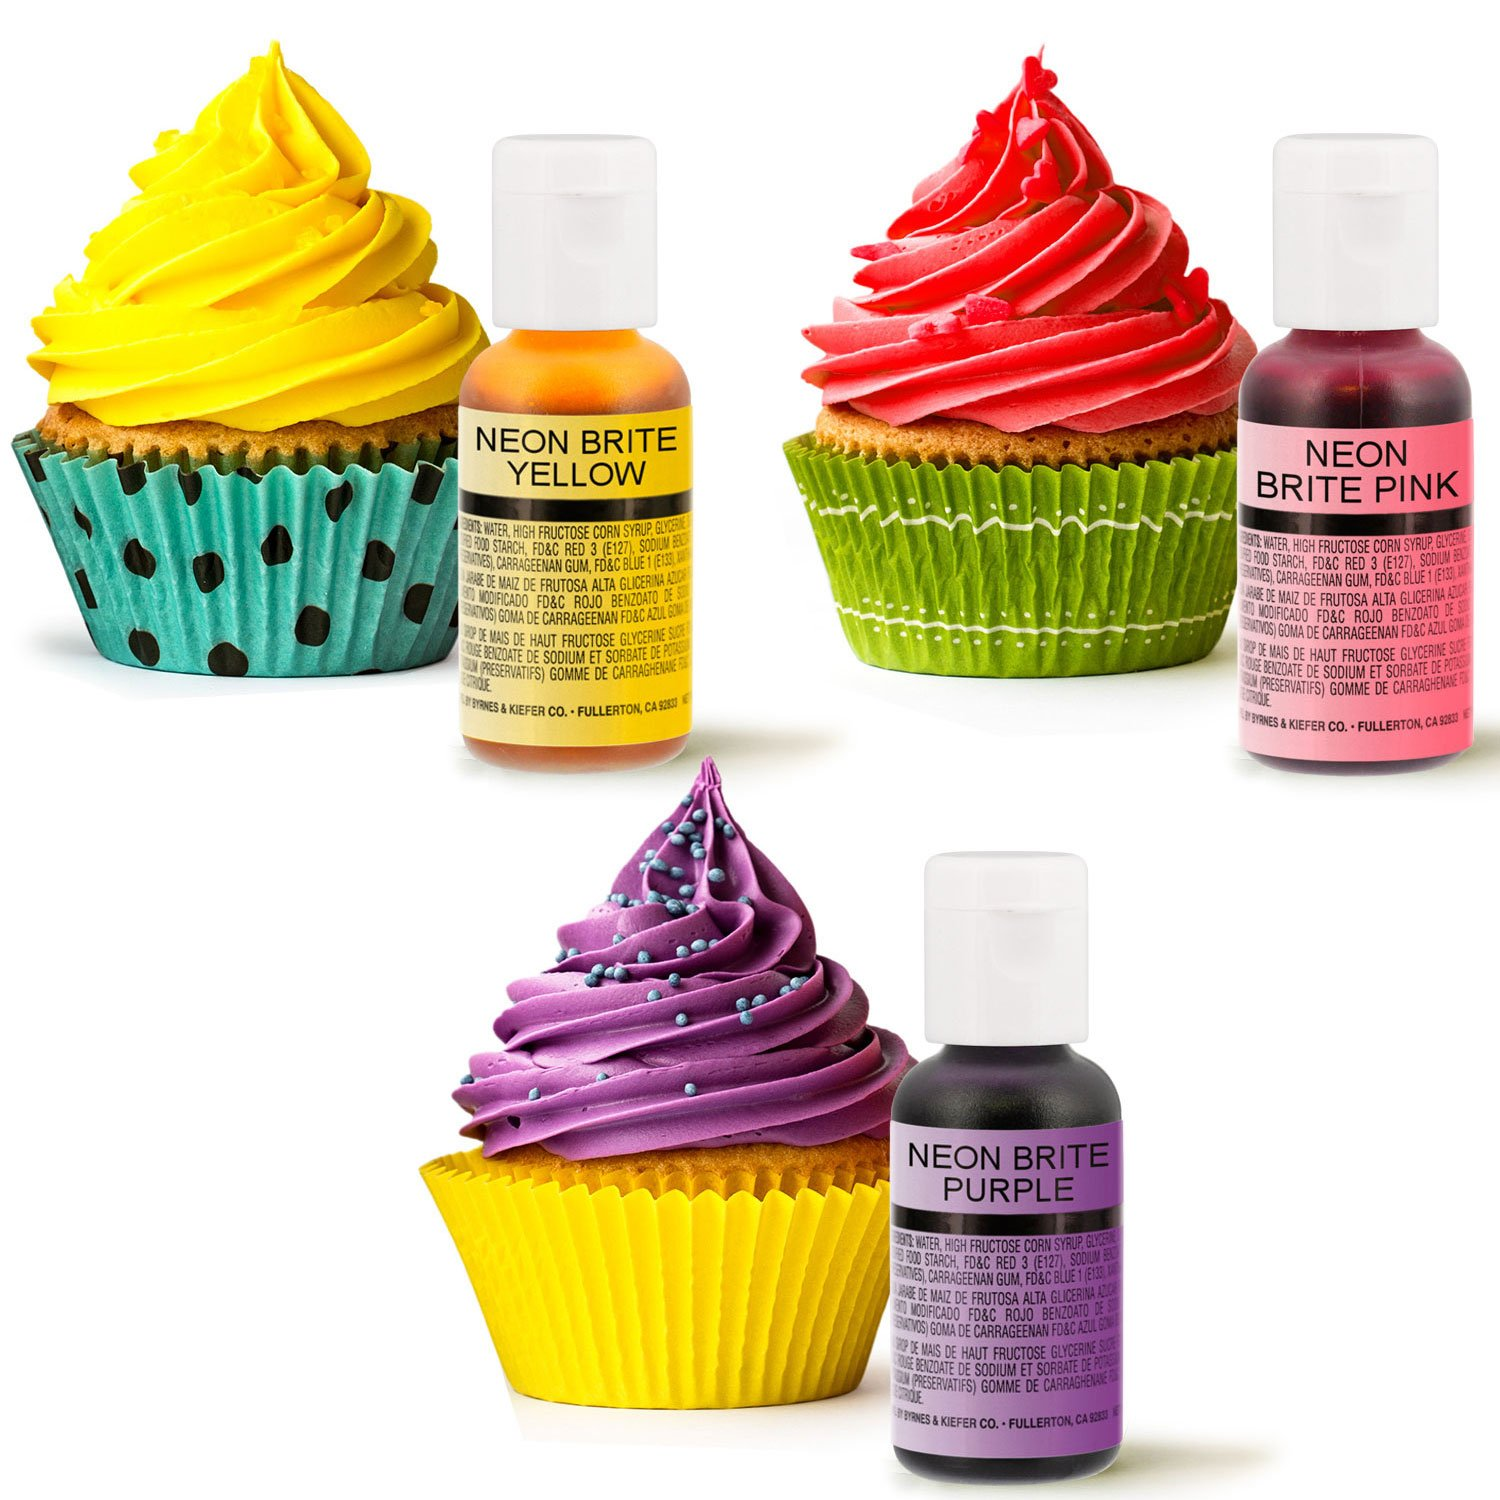 30 Color Cake Food Coloring Liqua-Gel Decorating Baking Ultimate Set - Primary, Secondary and Neon Colors - U.S. Cake Supply 0.75 fl. oz. (20ml) Bottles by U.S. Cake Supply (Image #2)